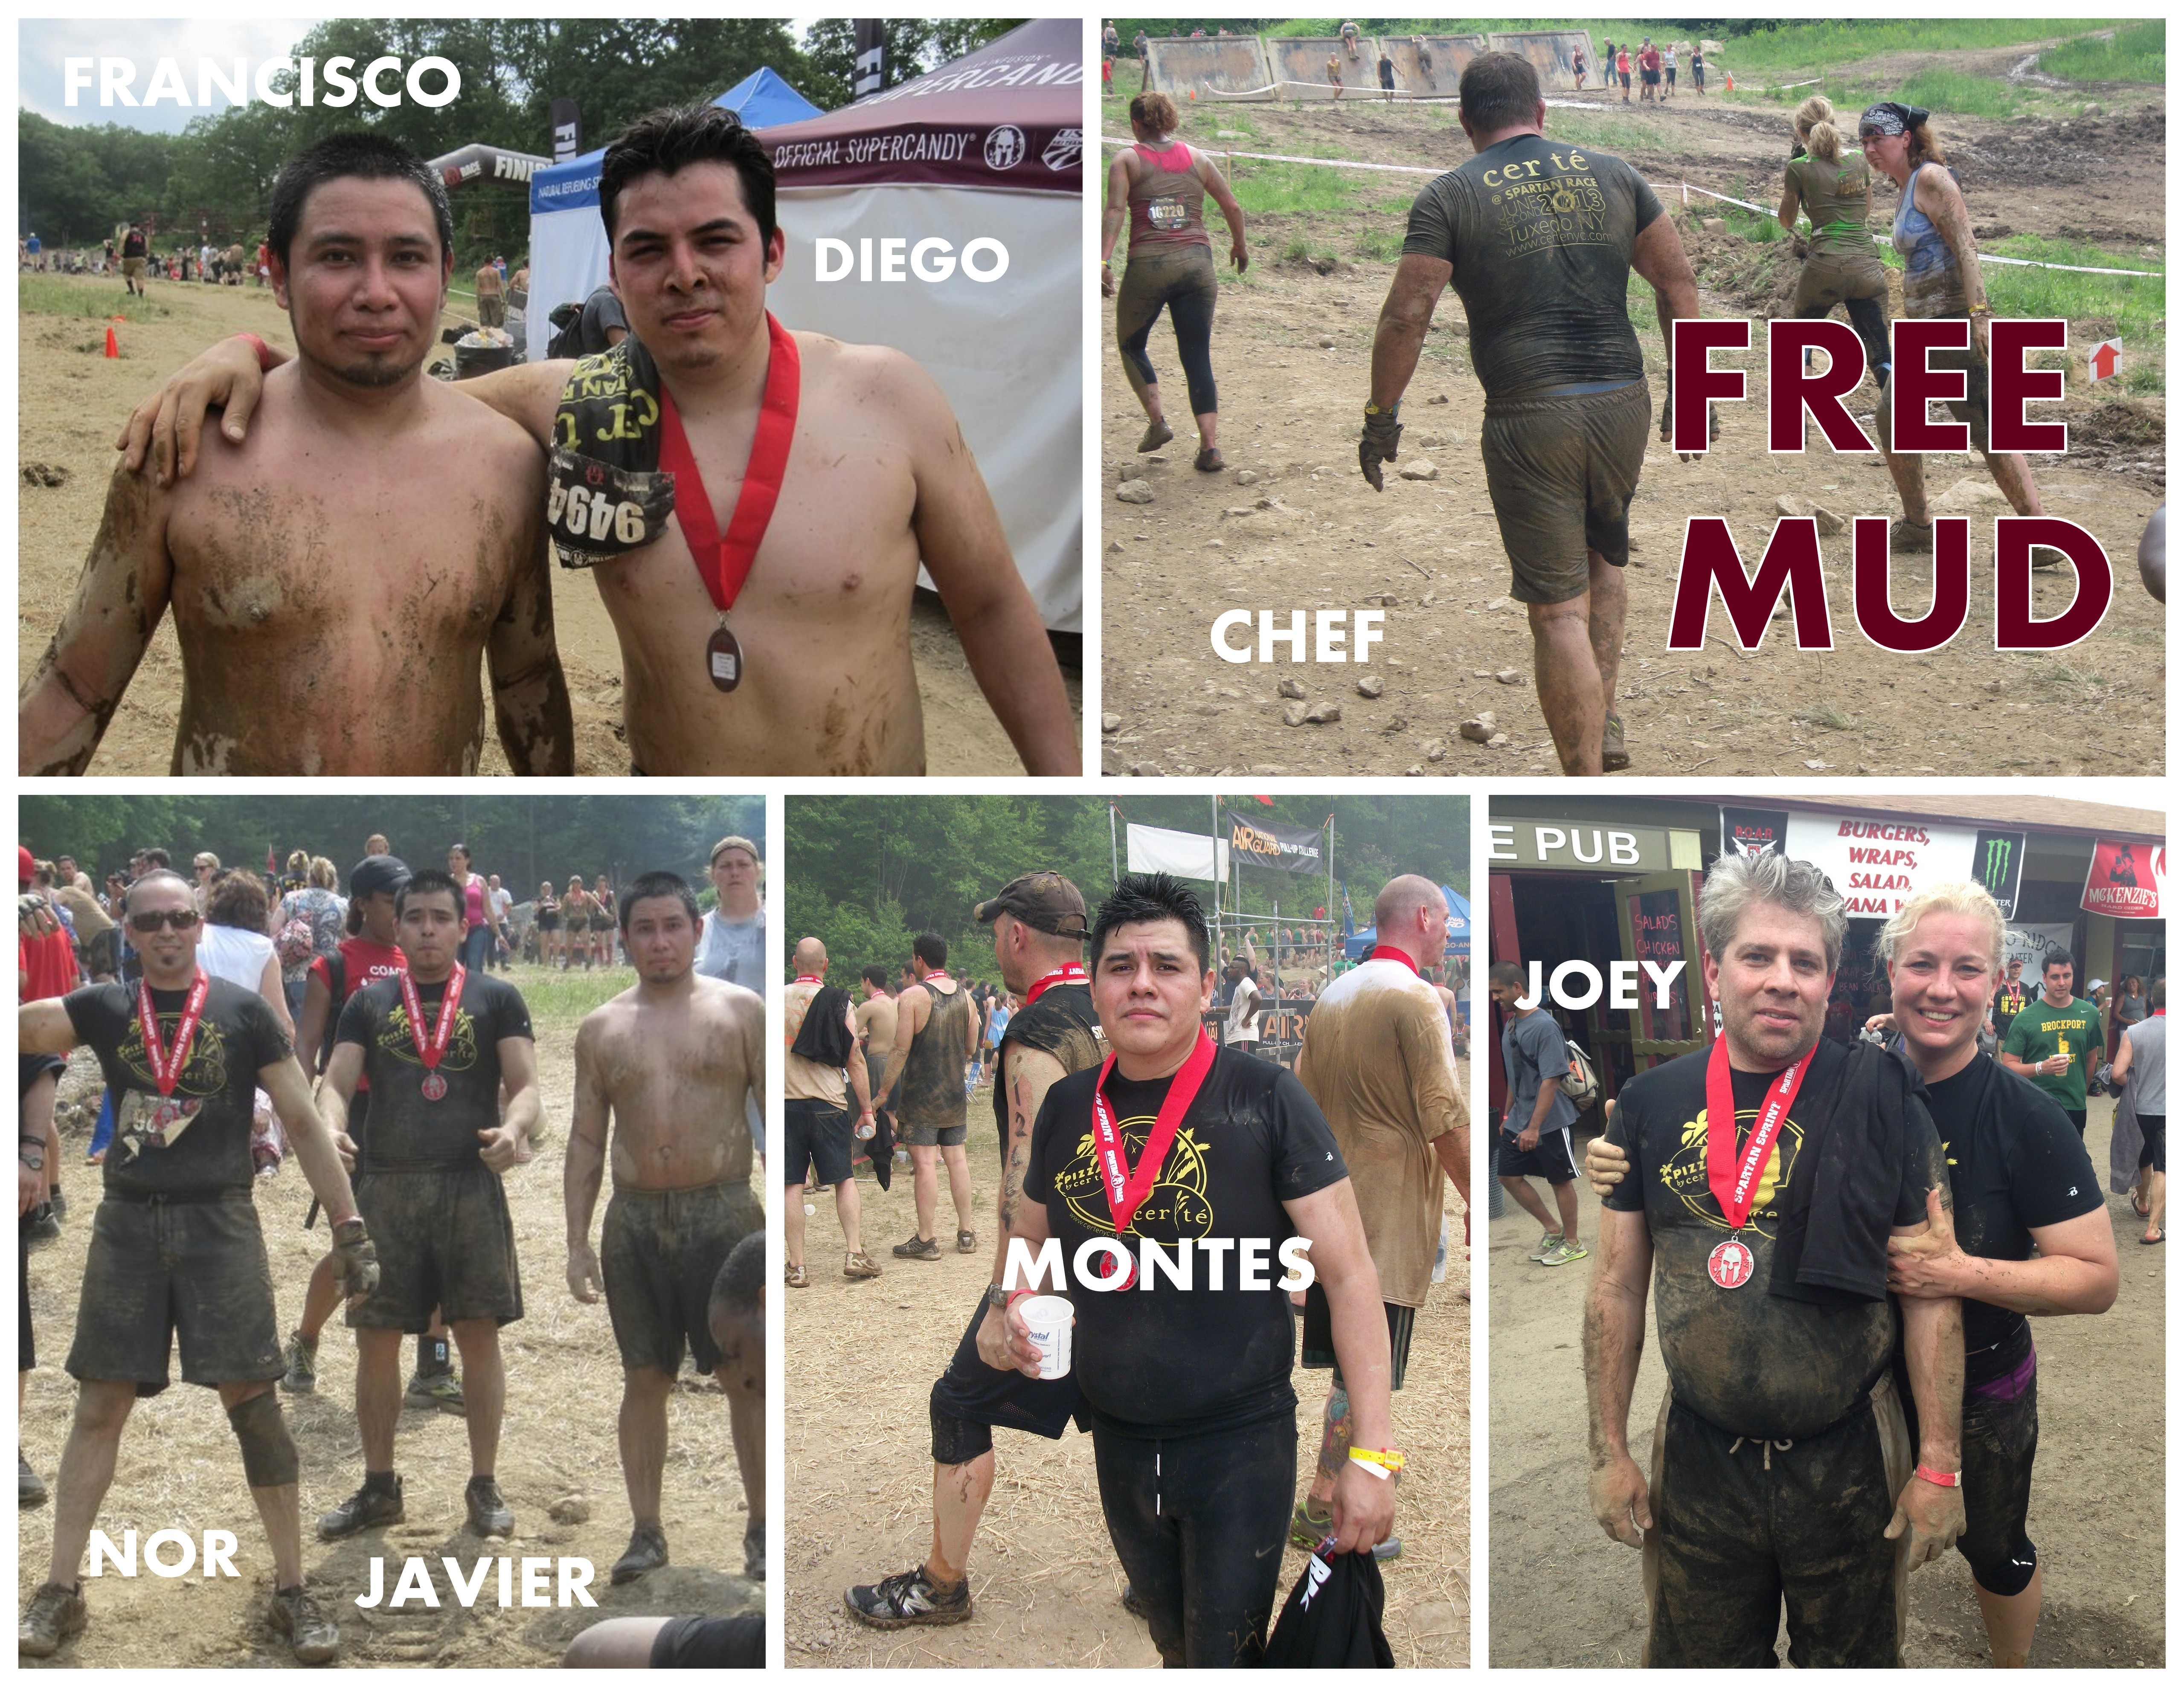 Spartan Race 2013. Collage. FREE MUD